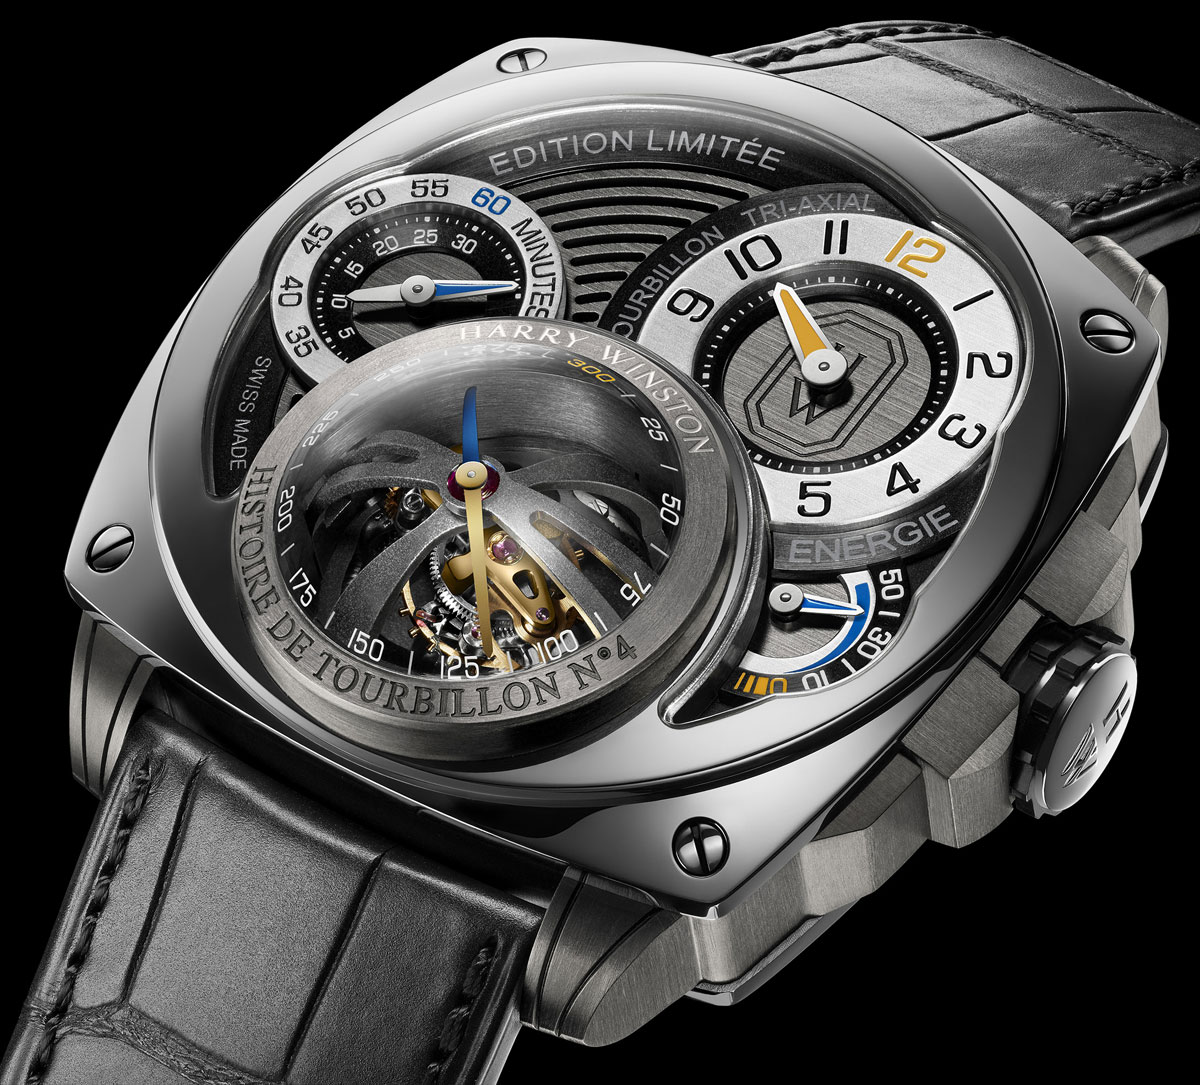 new harry winston histoire de tourbillon 4 watch limited to 20 pieces extravaganzi. Black Bedroom Furniture Sets. Home Design Ideas